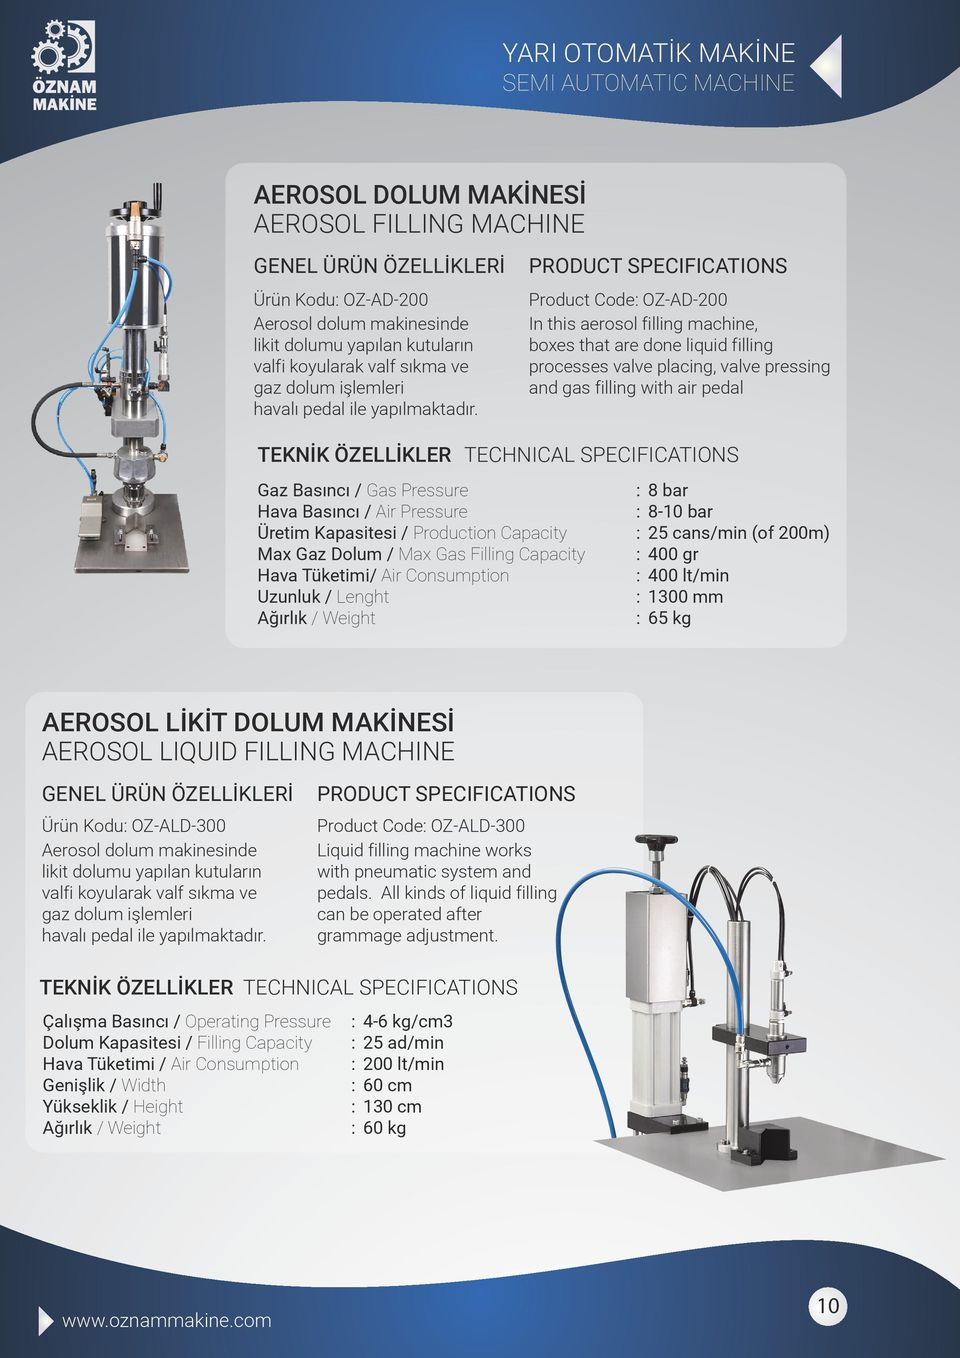 Product Code OZ-AD-200 In this aerosol filling machine, boxes that are done liquid filling processes valve placing, valve pressing and gas filling with air pedal Gaz Basıncı / Gas Pressure Hava